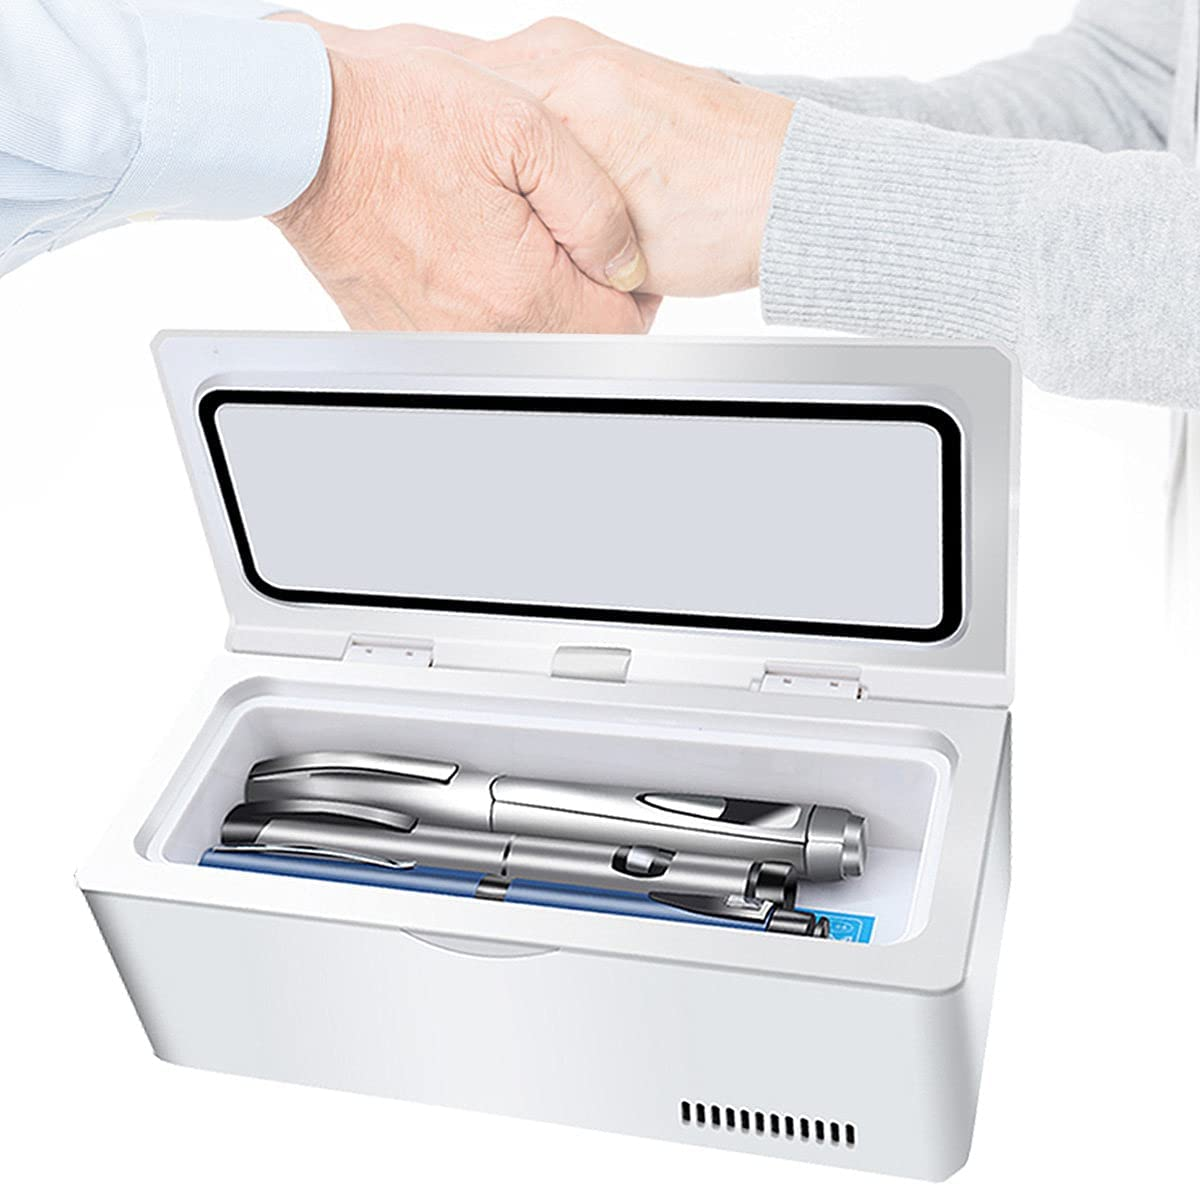 ZXLZM Insulin Cooling Case Portable Cas Refrigerated Max 42% OFF Travel Classic Car